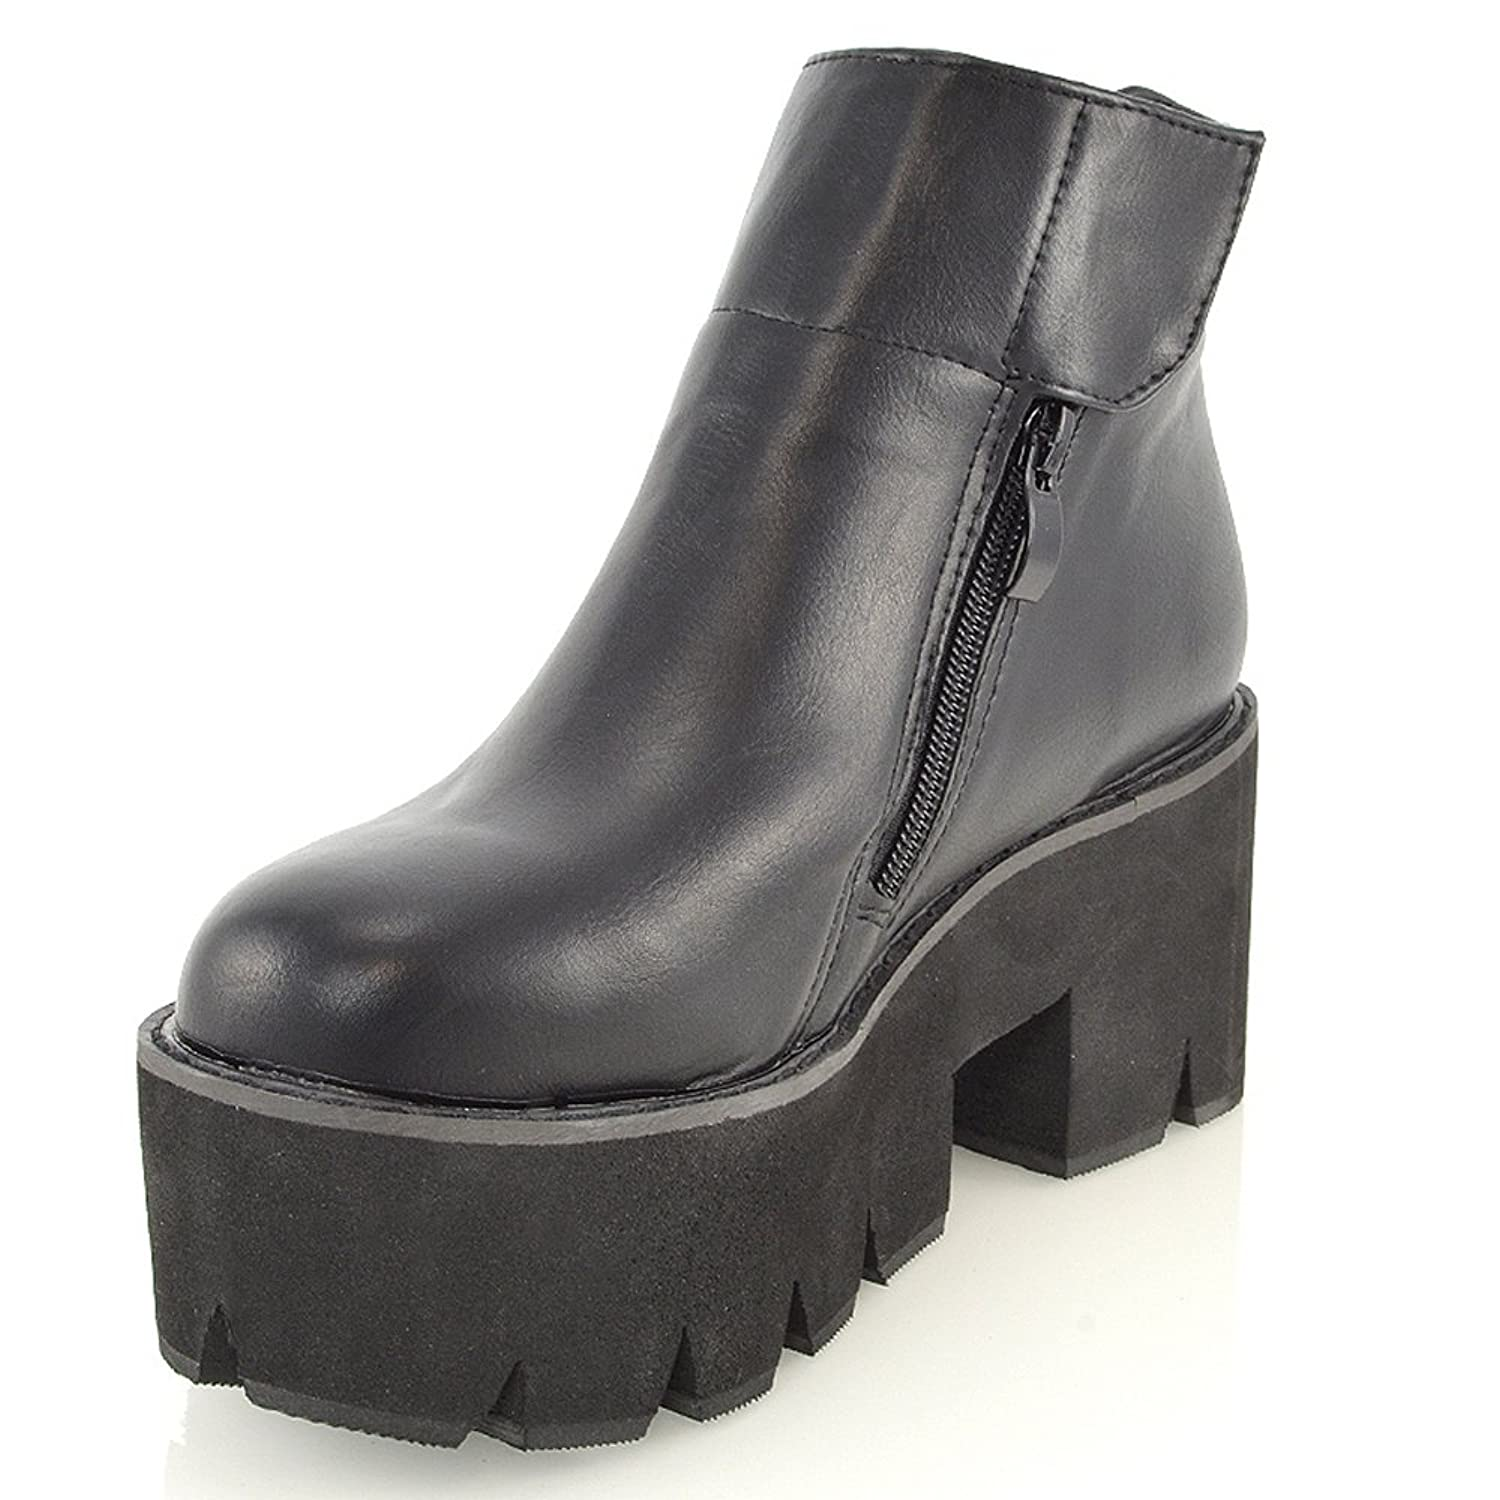 7cf025caa73 LADIES CHUNKY CLEATED SOLE GOTH PLATFORM BLOCK HEEL WOMENS ANKLE BOOTS  SHOES 3-8 (UK 4   EU 37   US 6